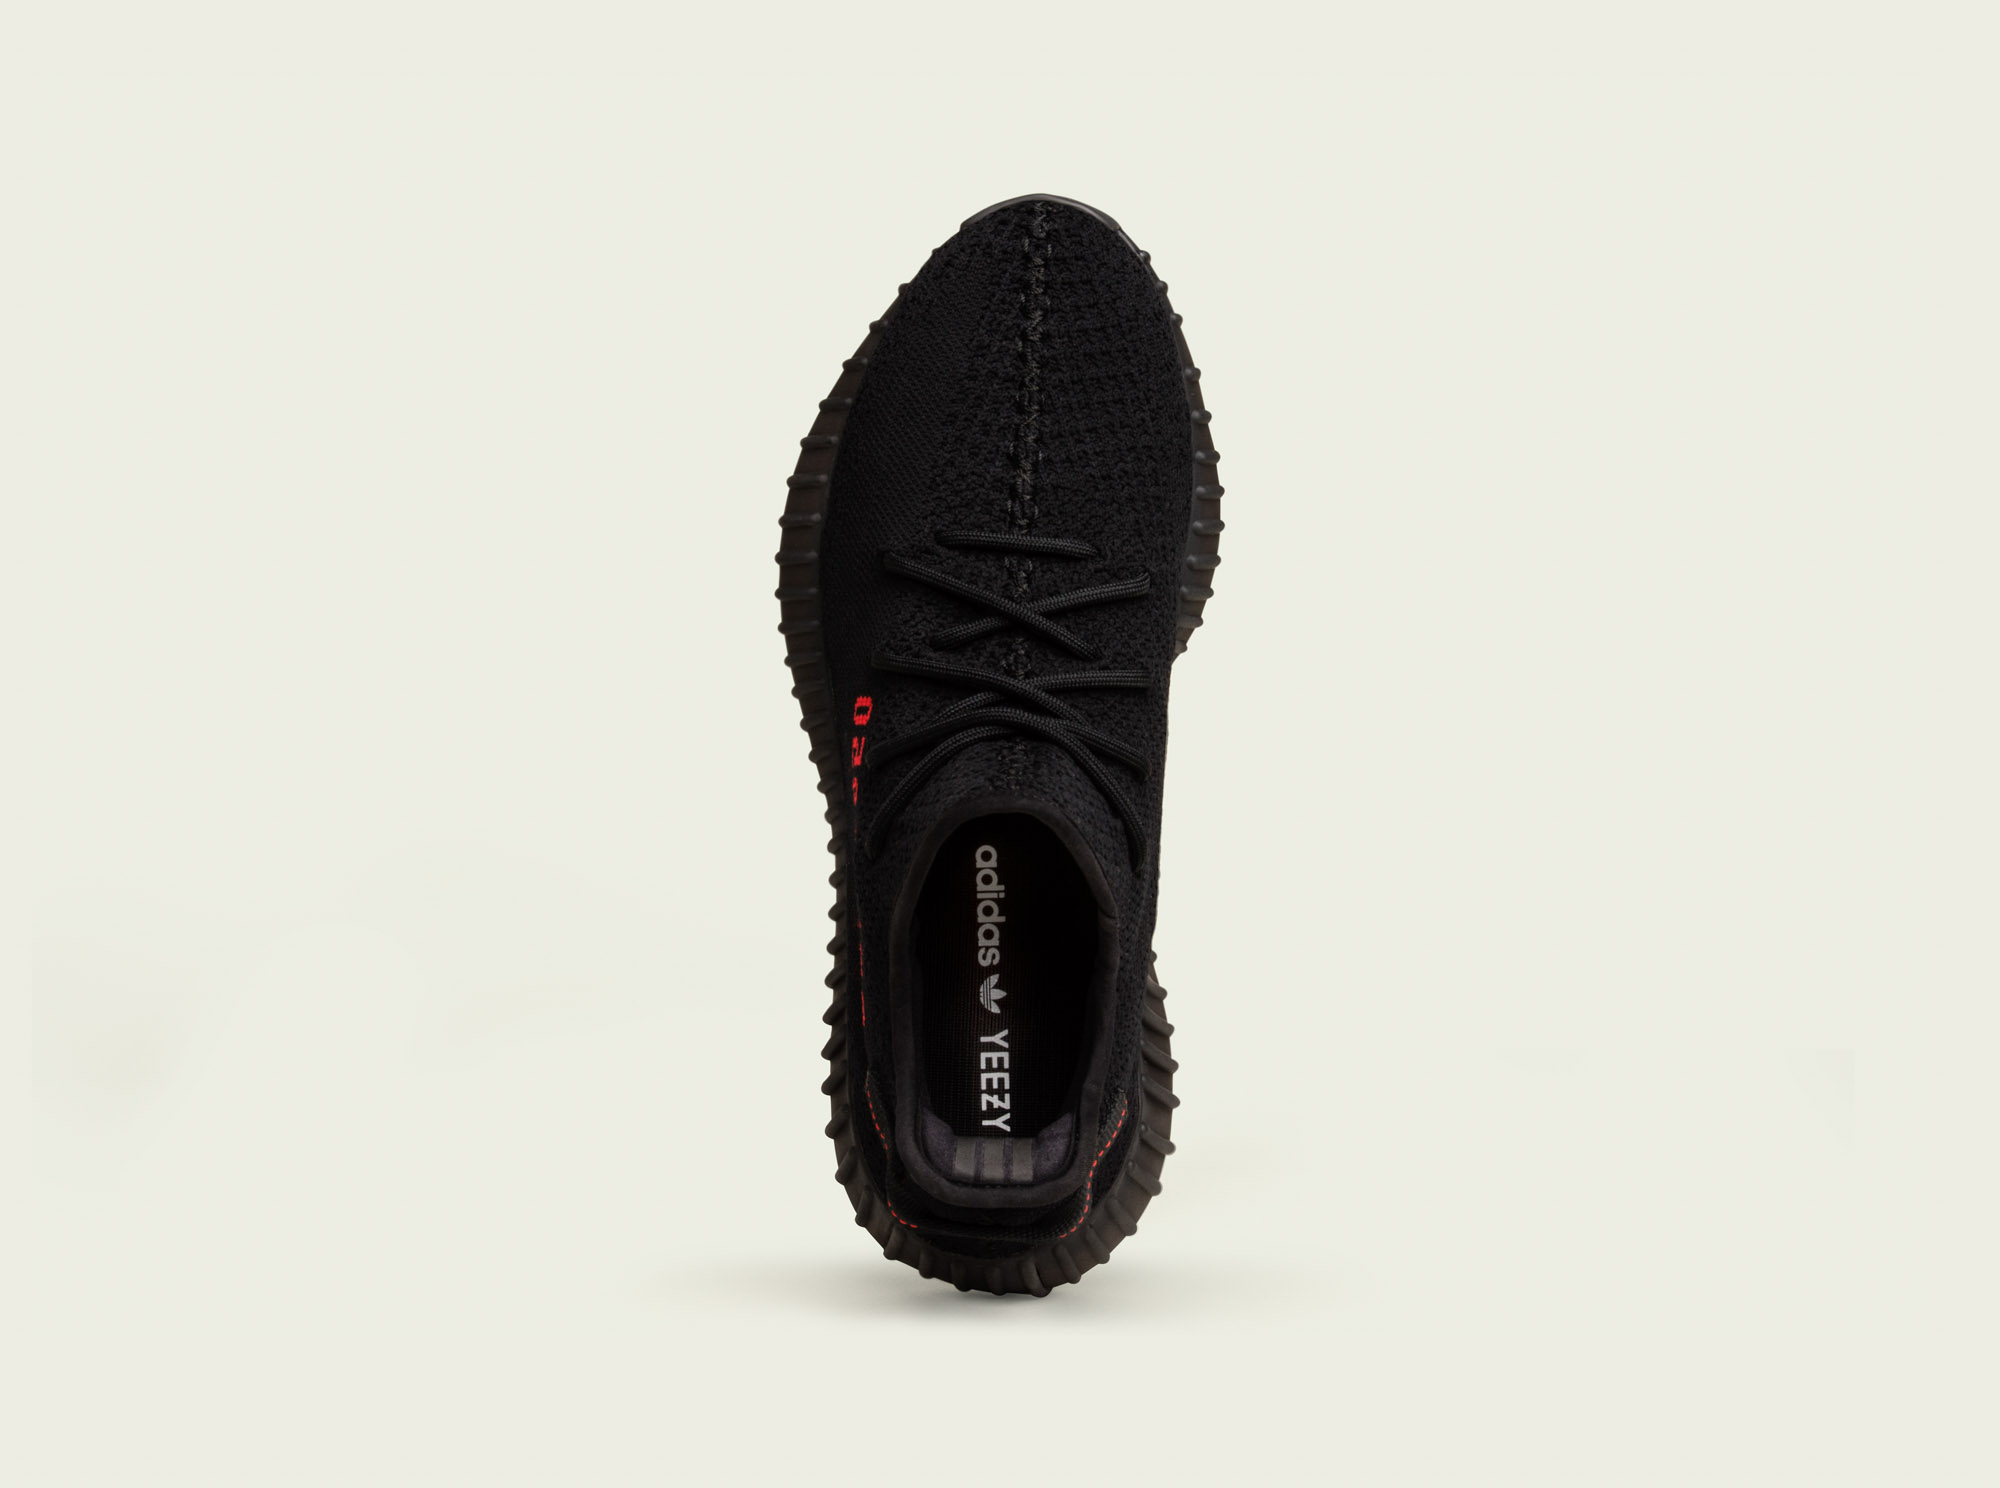 adidas Yeezy Boost 350 V2 Black Red CP9652 1